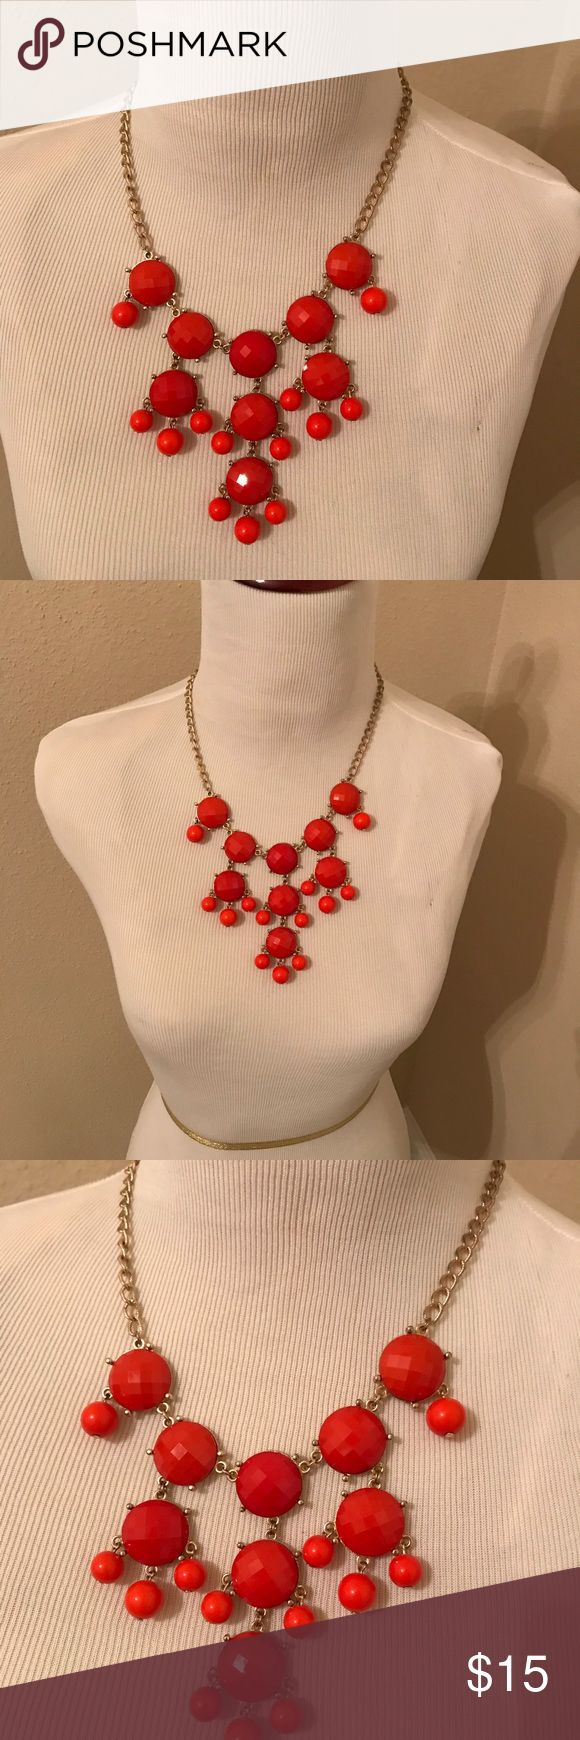 Statement bubble necklace Red orange bubble statement necklace barely worn! Would make a great piece to dress up any top or dress. Jewelry Necklaces